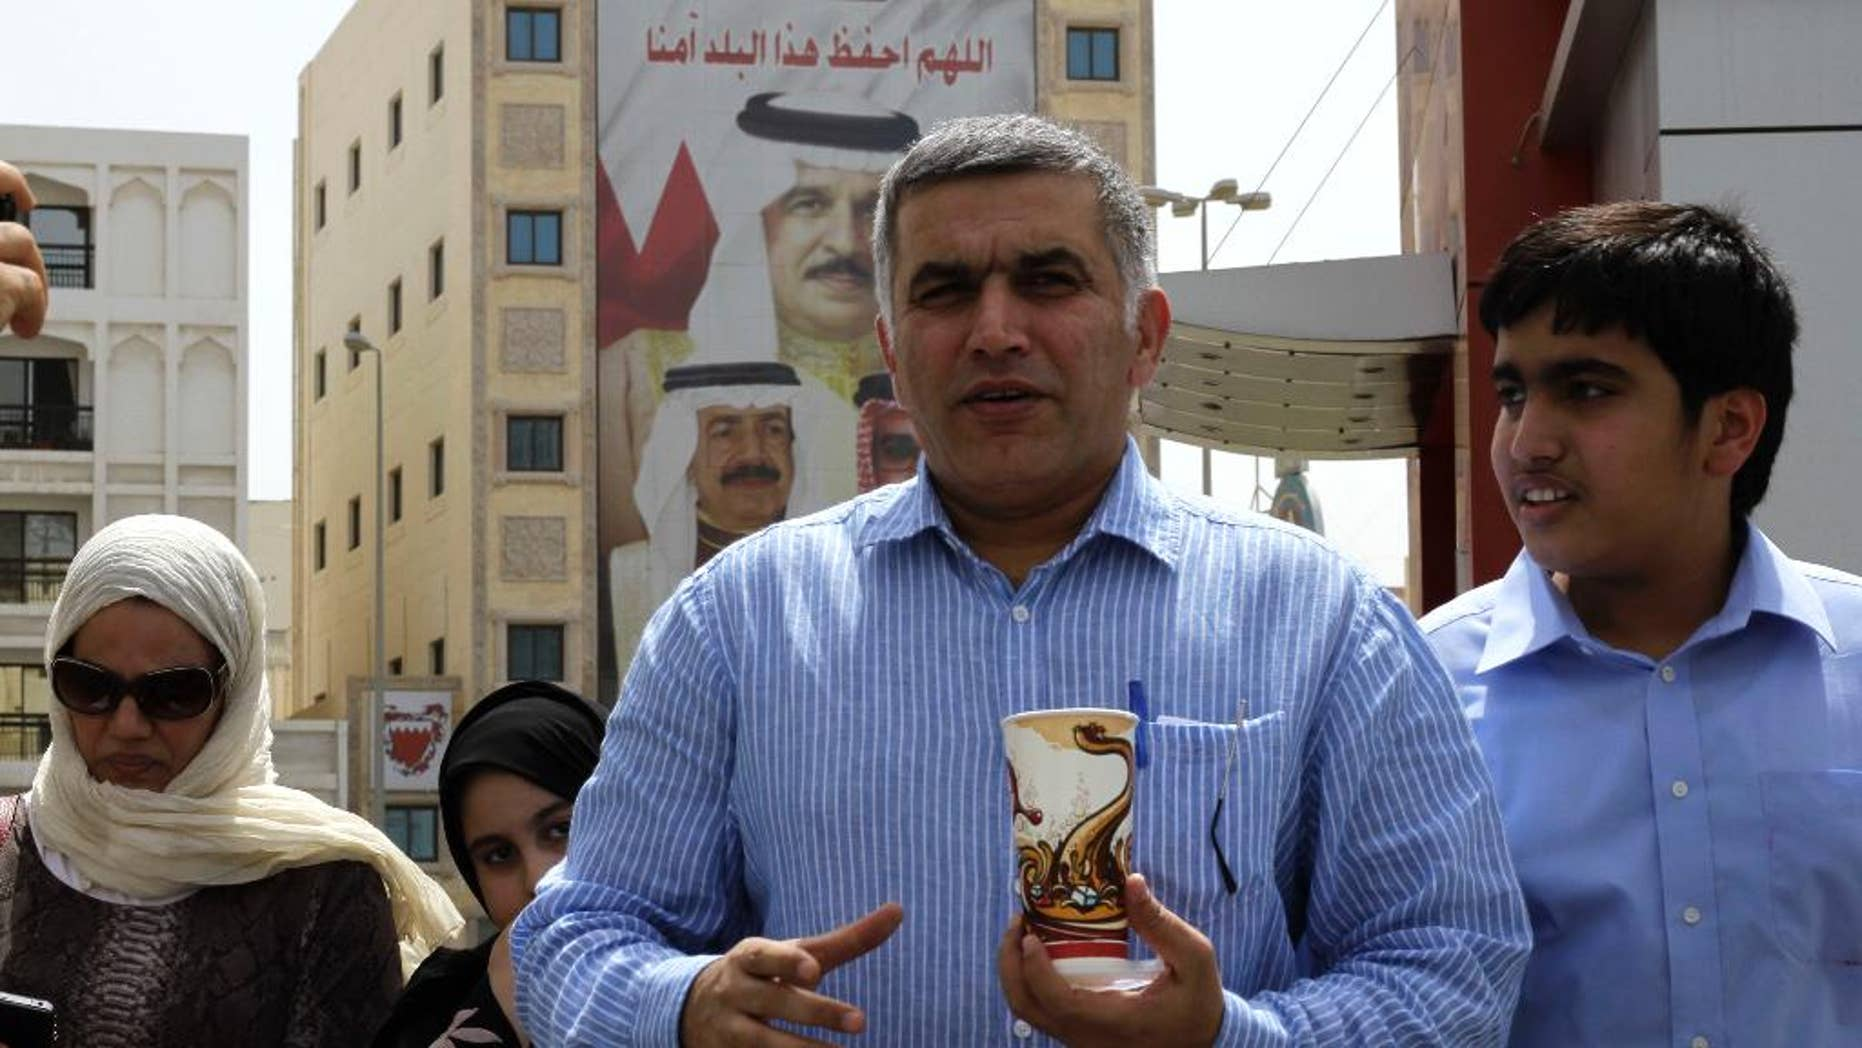 """This May 28, 2011 photo, Bahraini human rights activist Nabeel Rajab, center, accompanied by his wife Sumaya, left, daughter Malak, second left, and son Adam, right, leaves a Manama, Bahrain, police station.   Rajab was formally charged on Thursday, Oct. 9, 2014,  with insulting the ministries of defense and interior. His court date was set for Oct. 19.  Rajab was detained Oct. 1 over his tweets alleging that Bahrain's security institutions were incubators for extremist ideology. His lawyer Jalila al-Sayed said he was also accused of """"intimidating"""" security forces.  (AP Photo/Hasan Jamali)"""